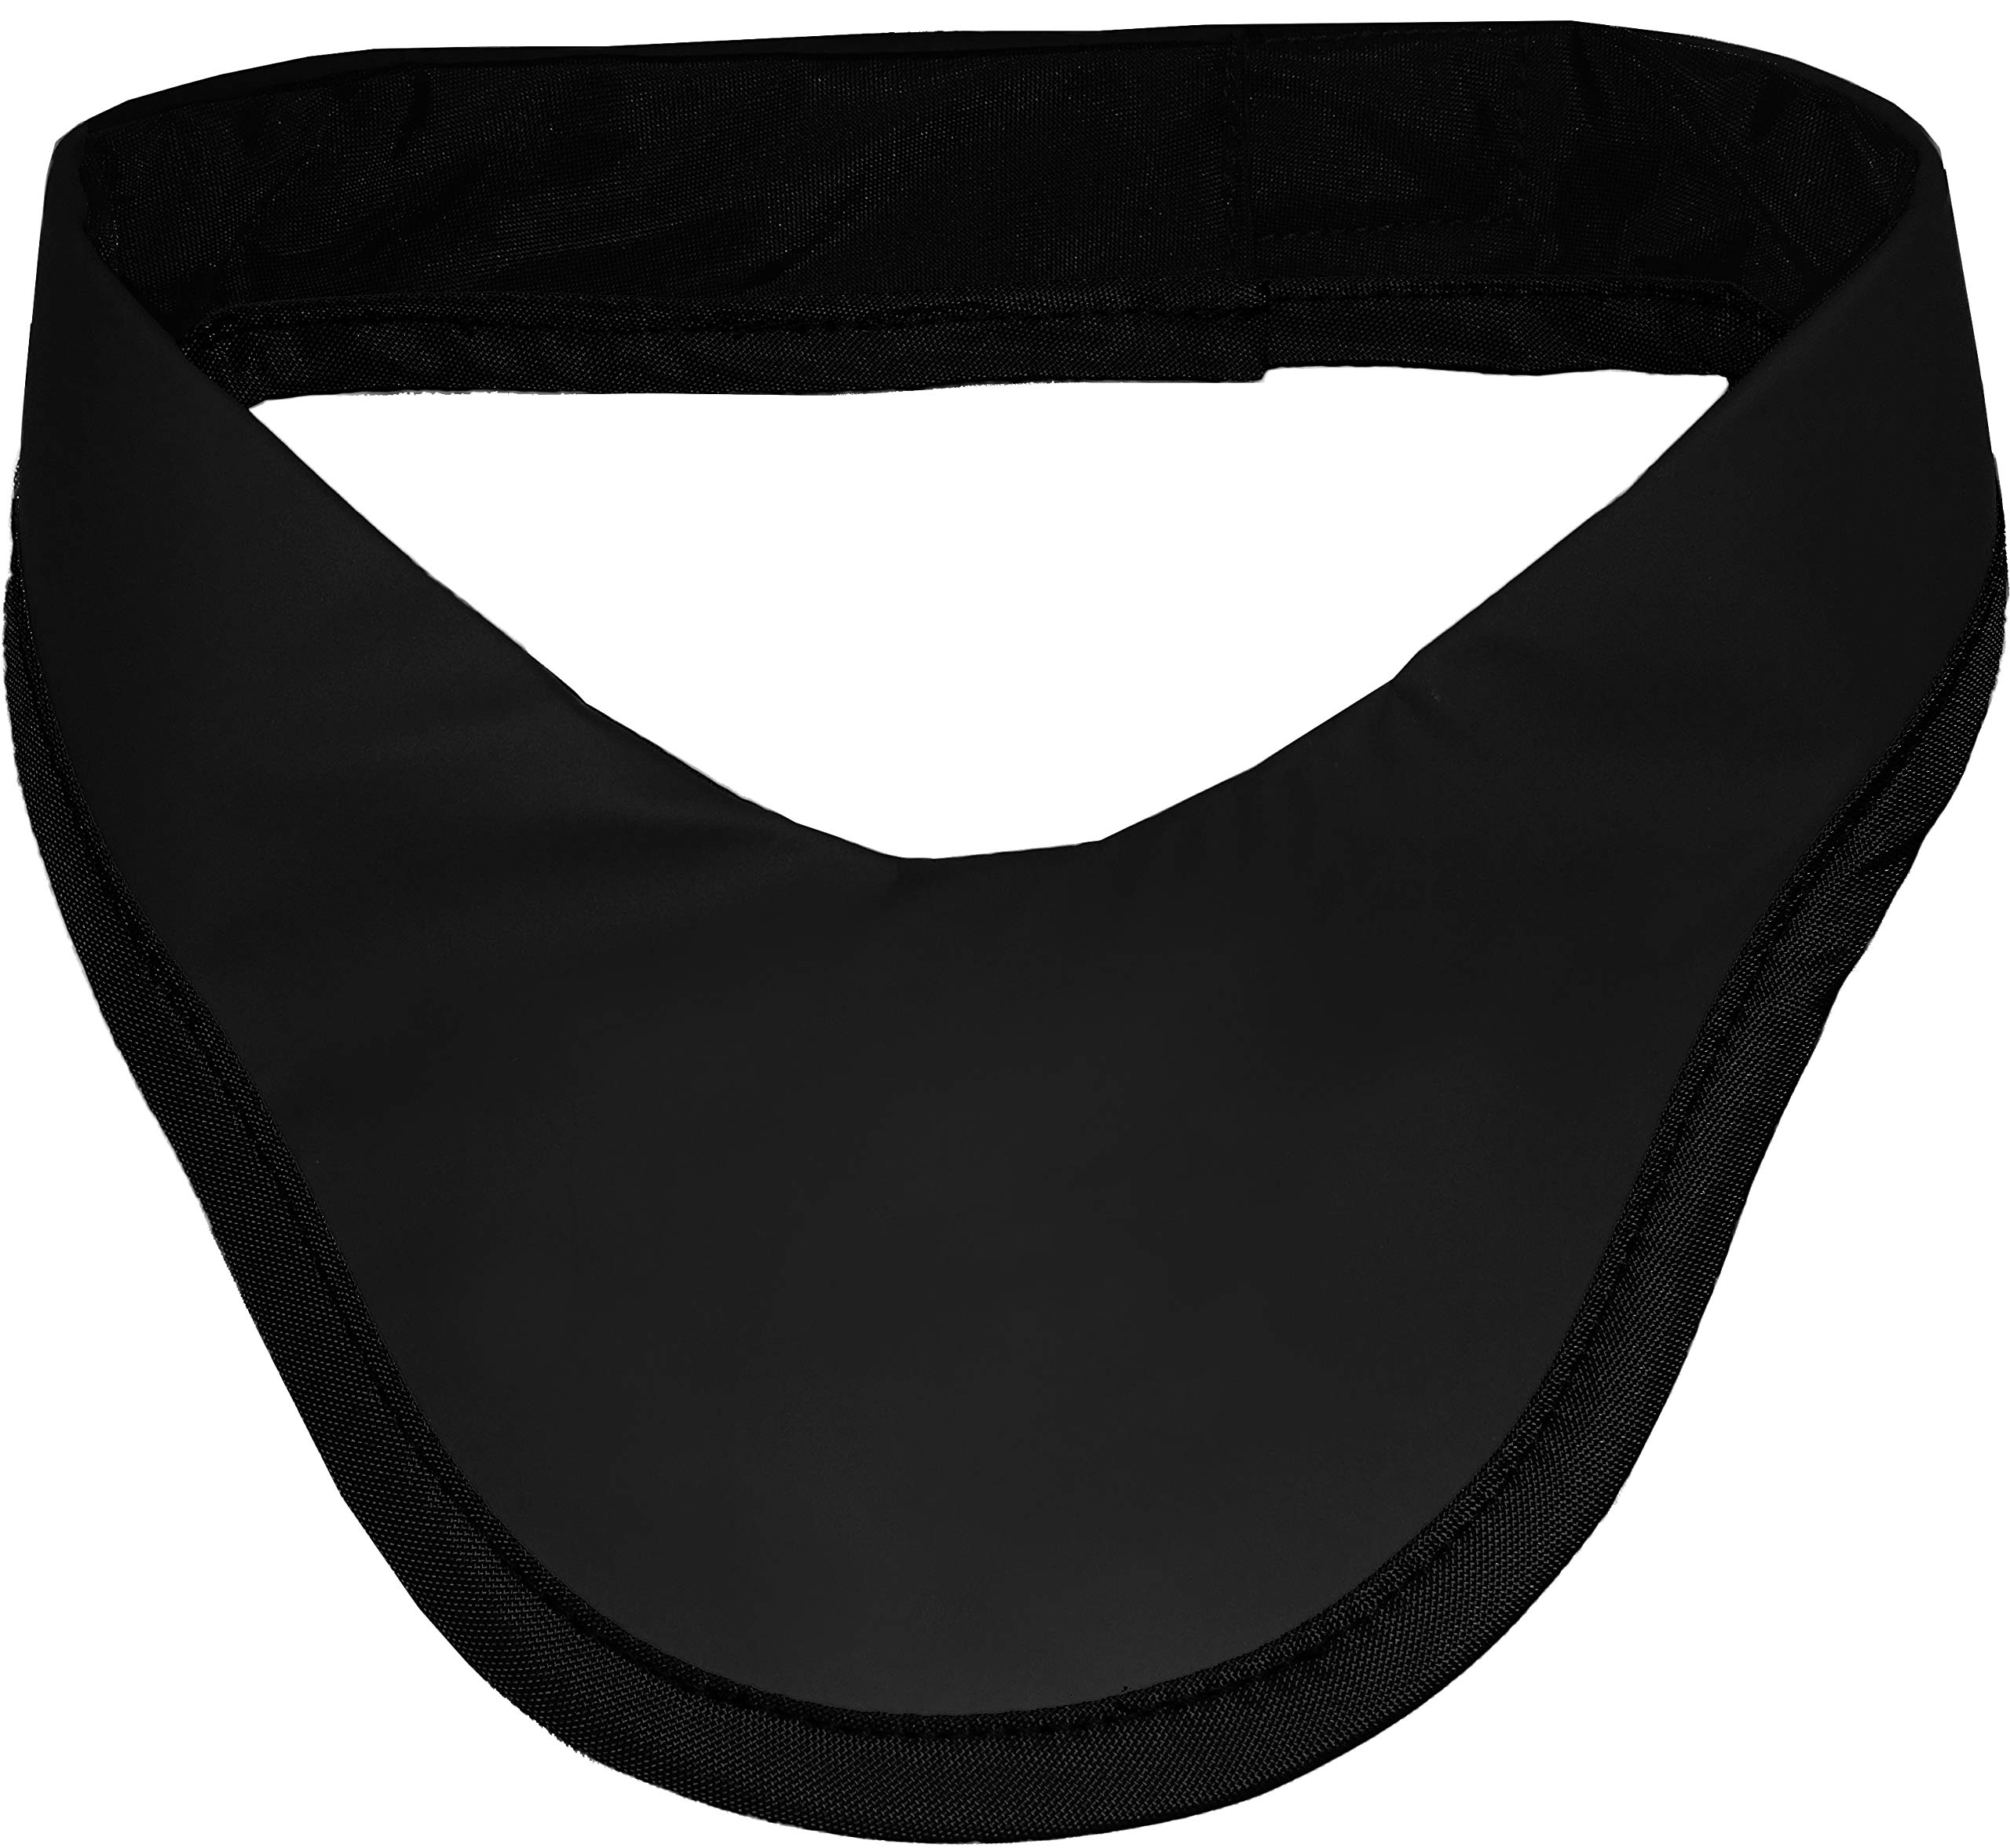 Radiation Protection Thyroid Collar Lead Free Antibacterial Stain Resistant - Black